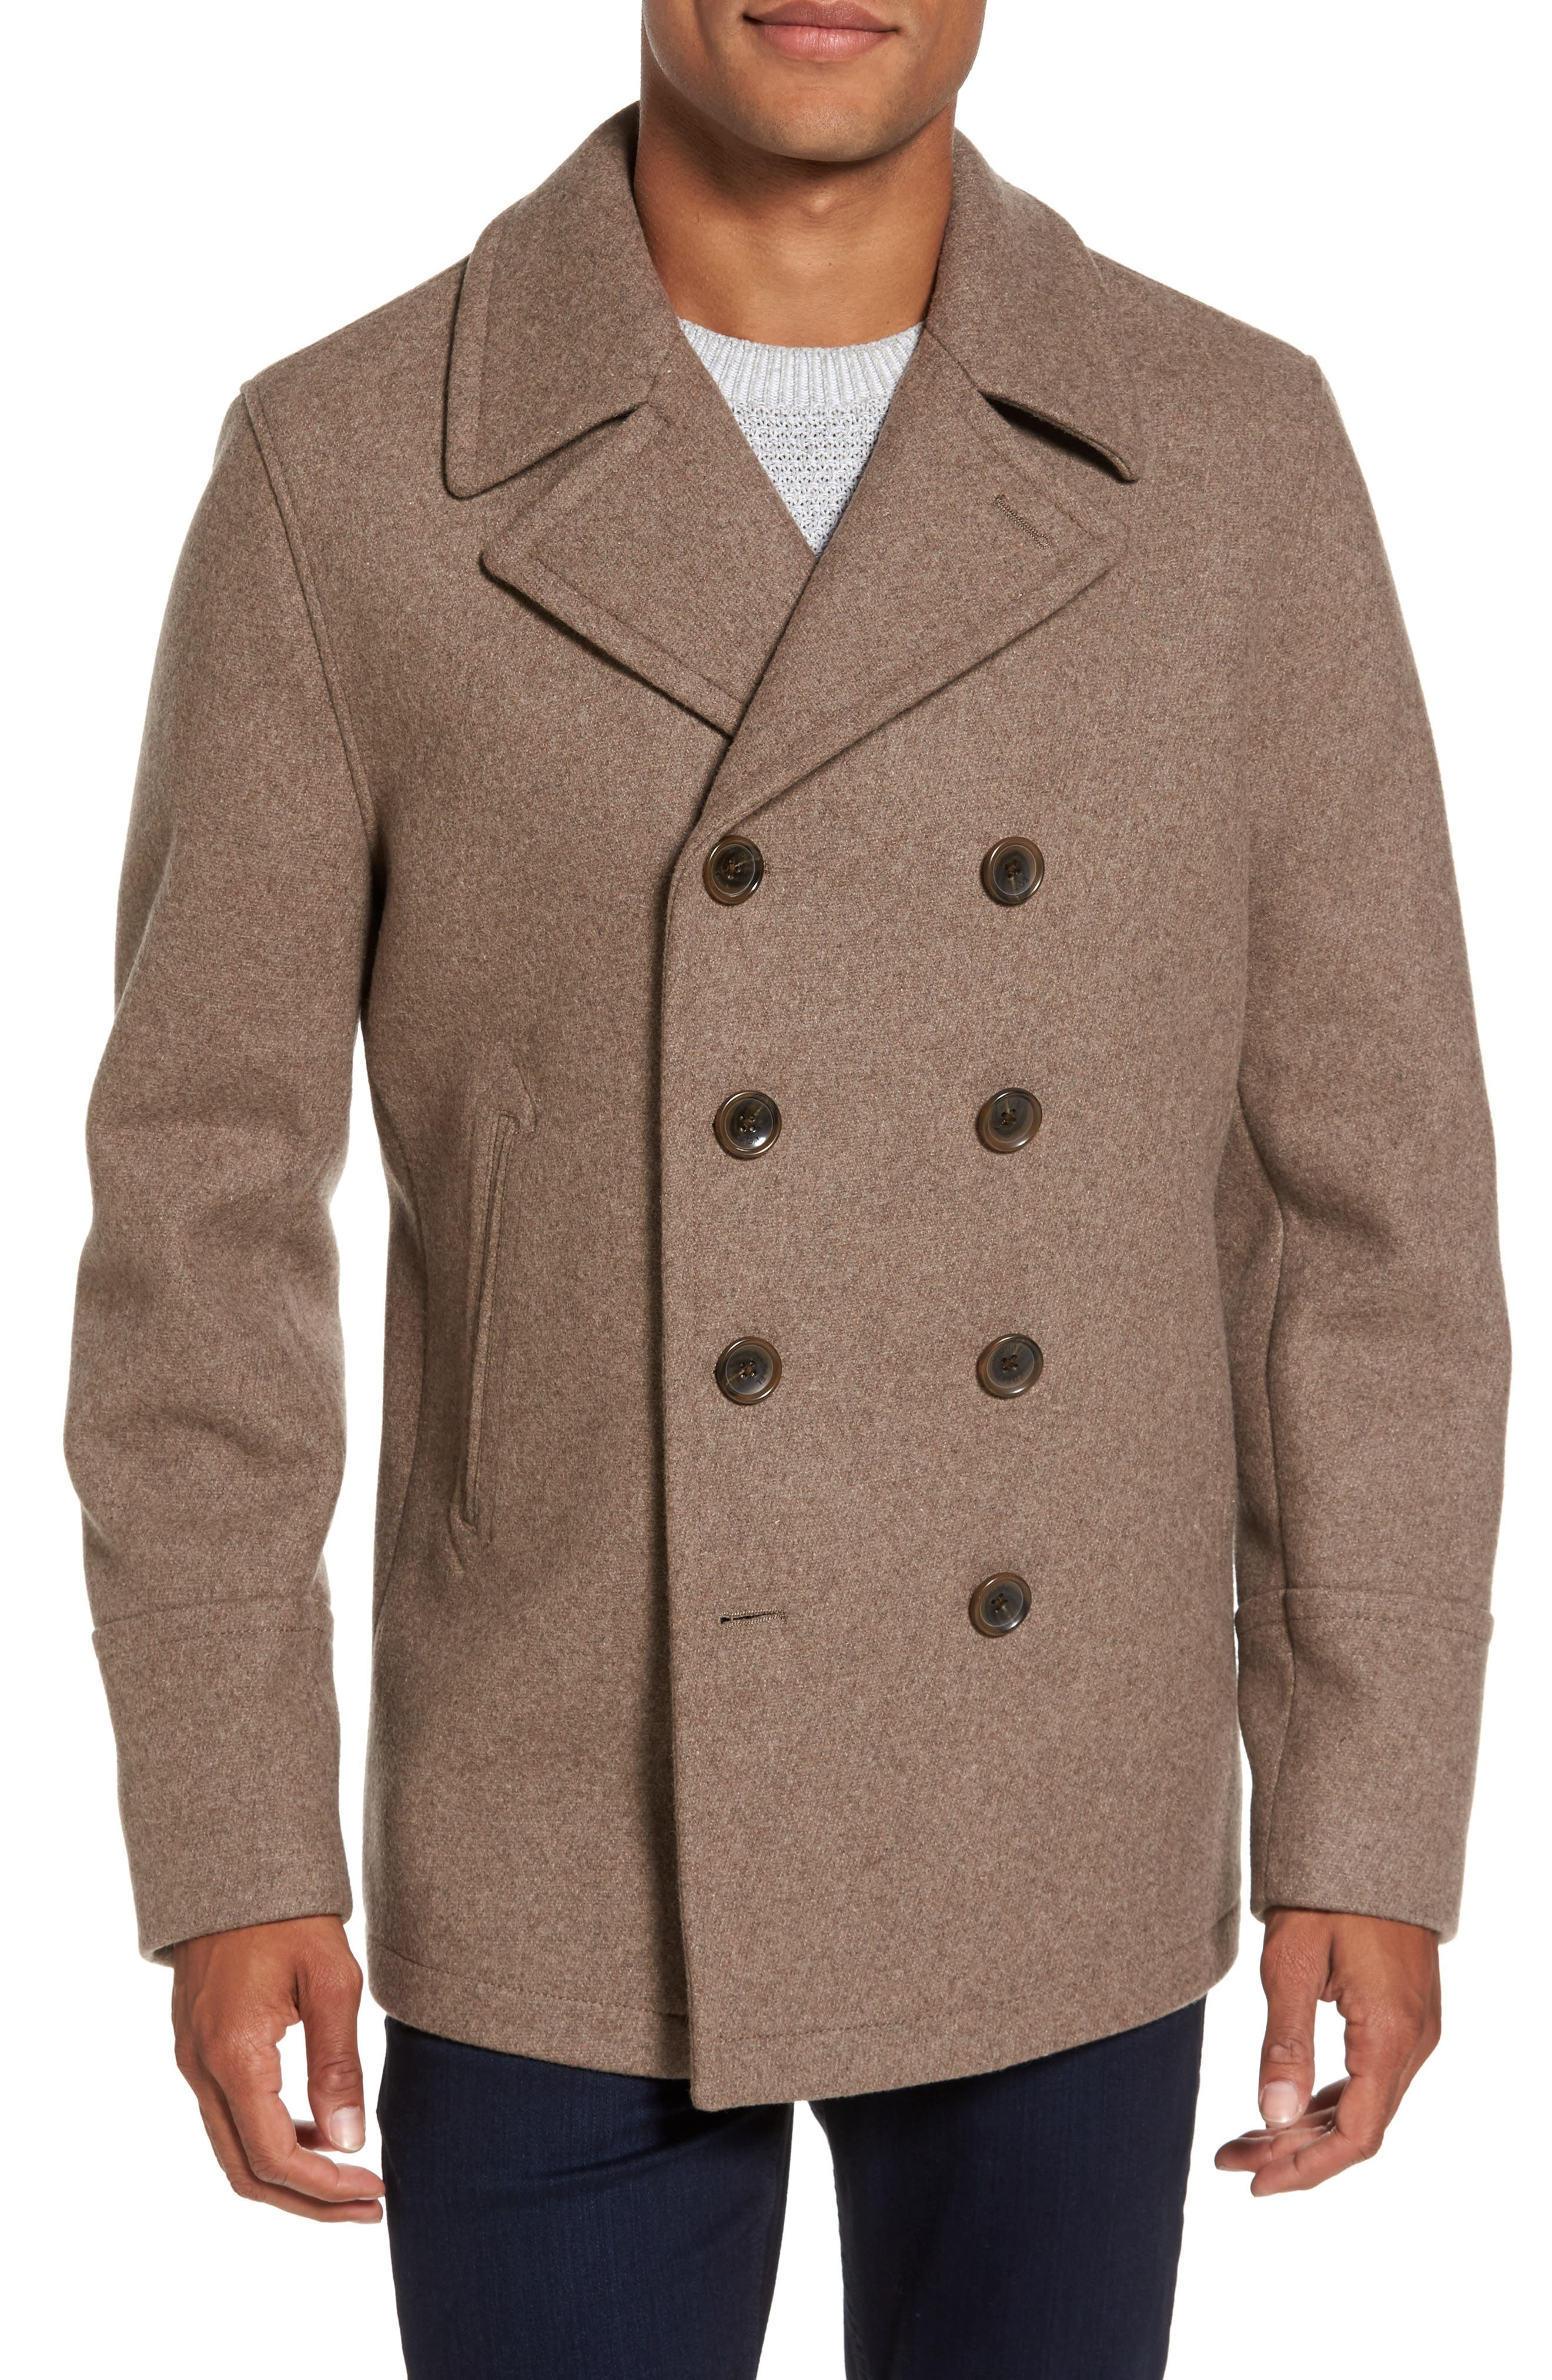 Alternate Image 1 Selected - Michael Kors Wool Blend Double Breasted Peacoat